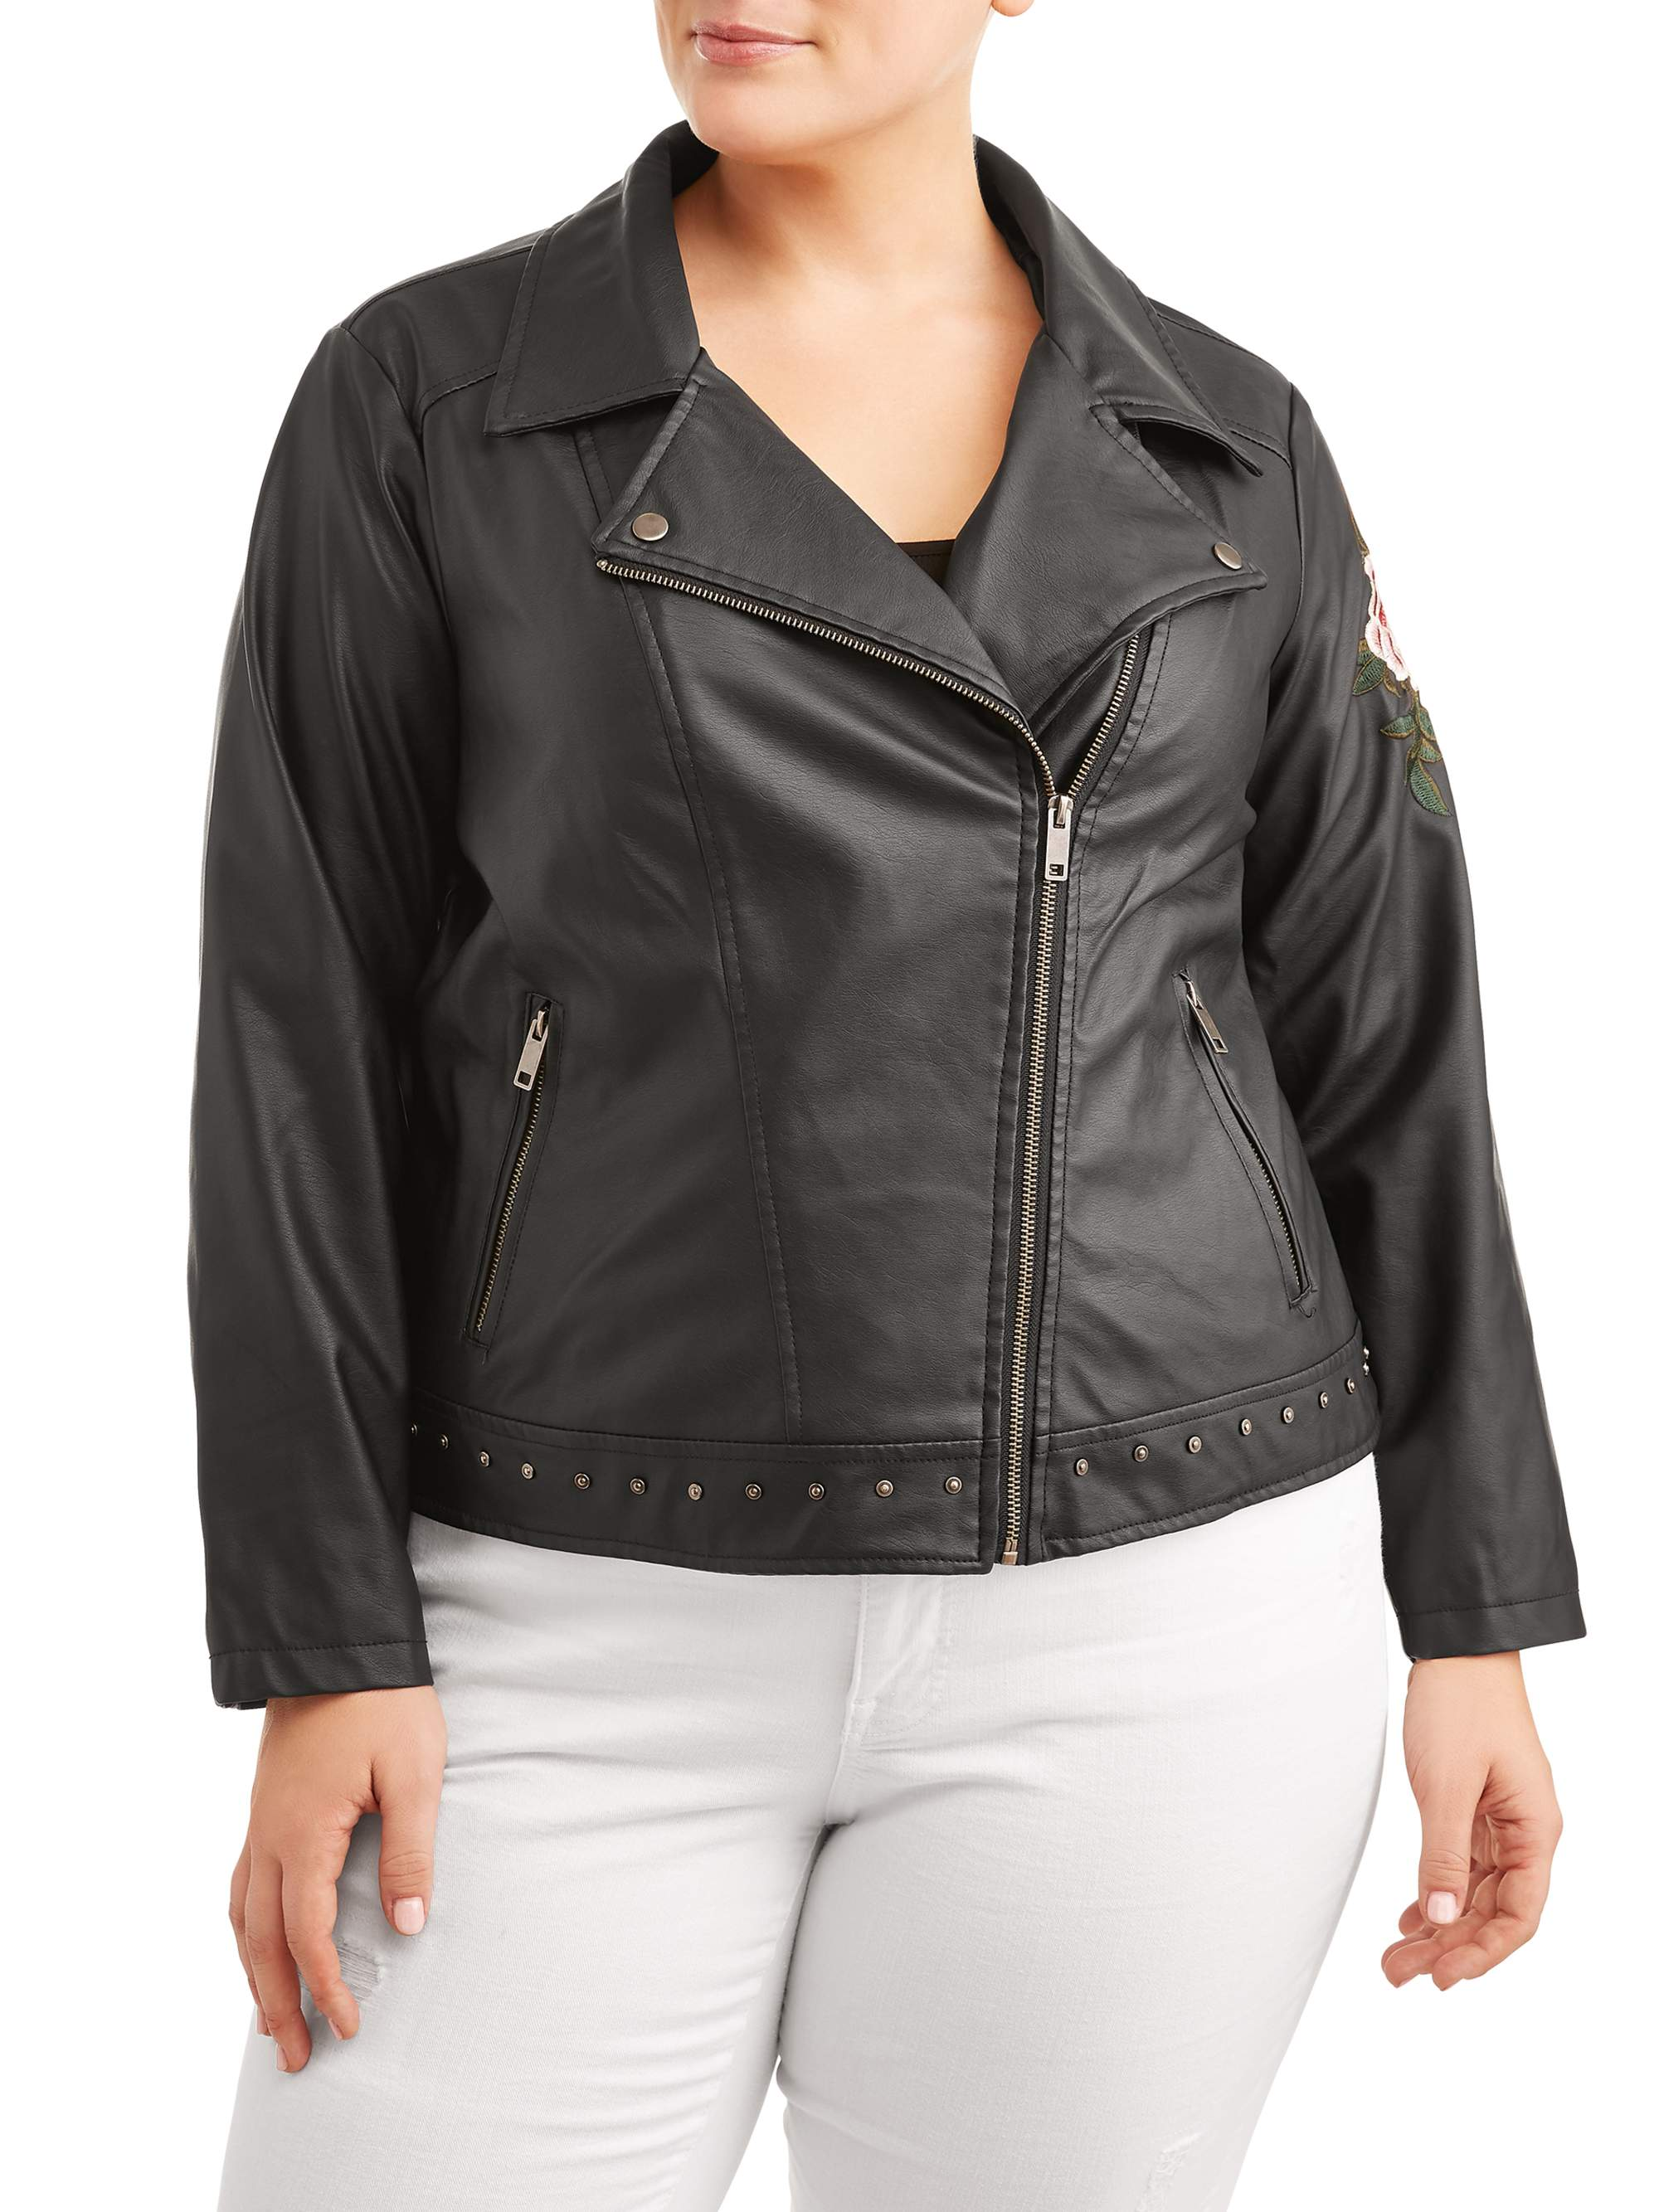 0a30ac54db New Look - Women's Plus Size Classic Leather Jacket with Rose Applique -  Walmart.com